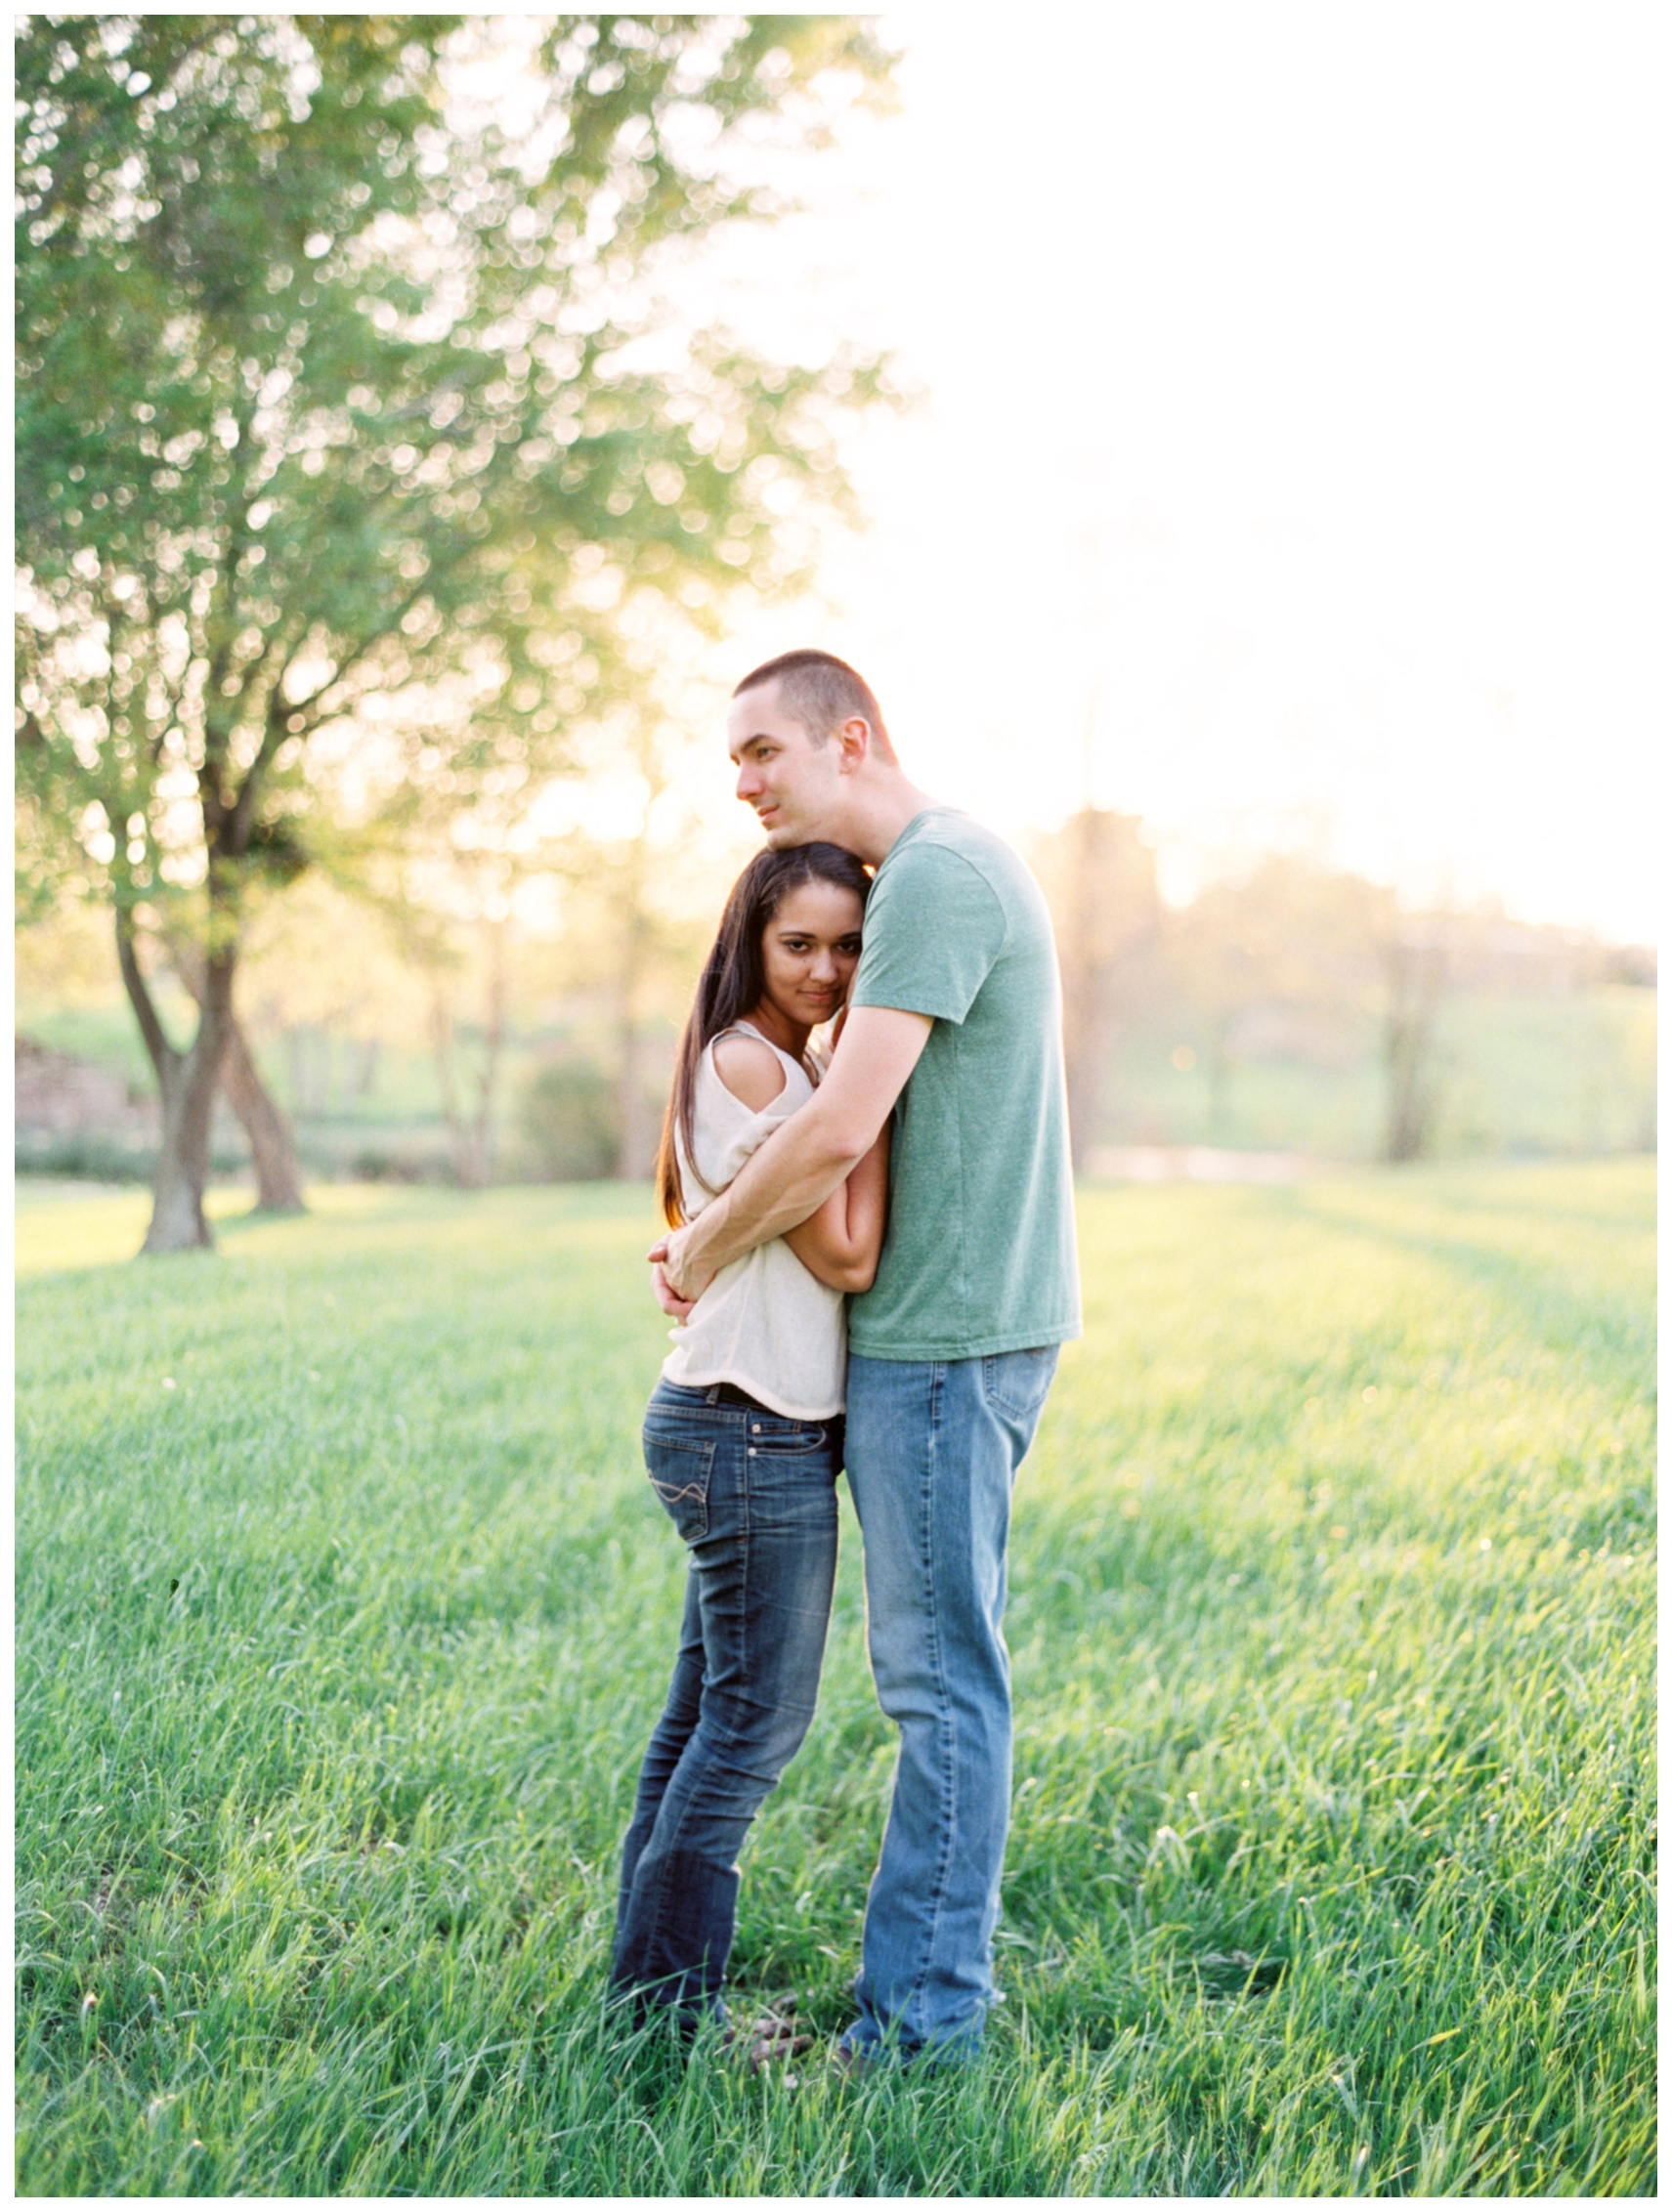 Nyssa & JD Engagements - Rock Lake Ranch - College Station Tx - Film-22_STP.jpg